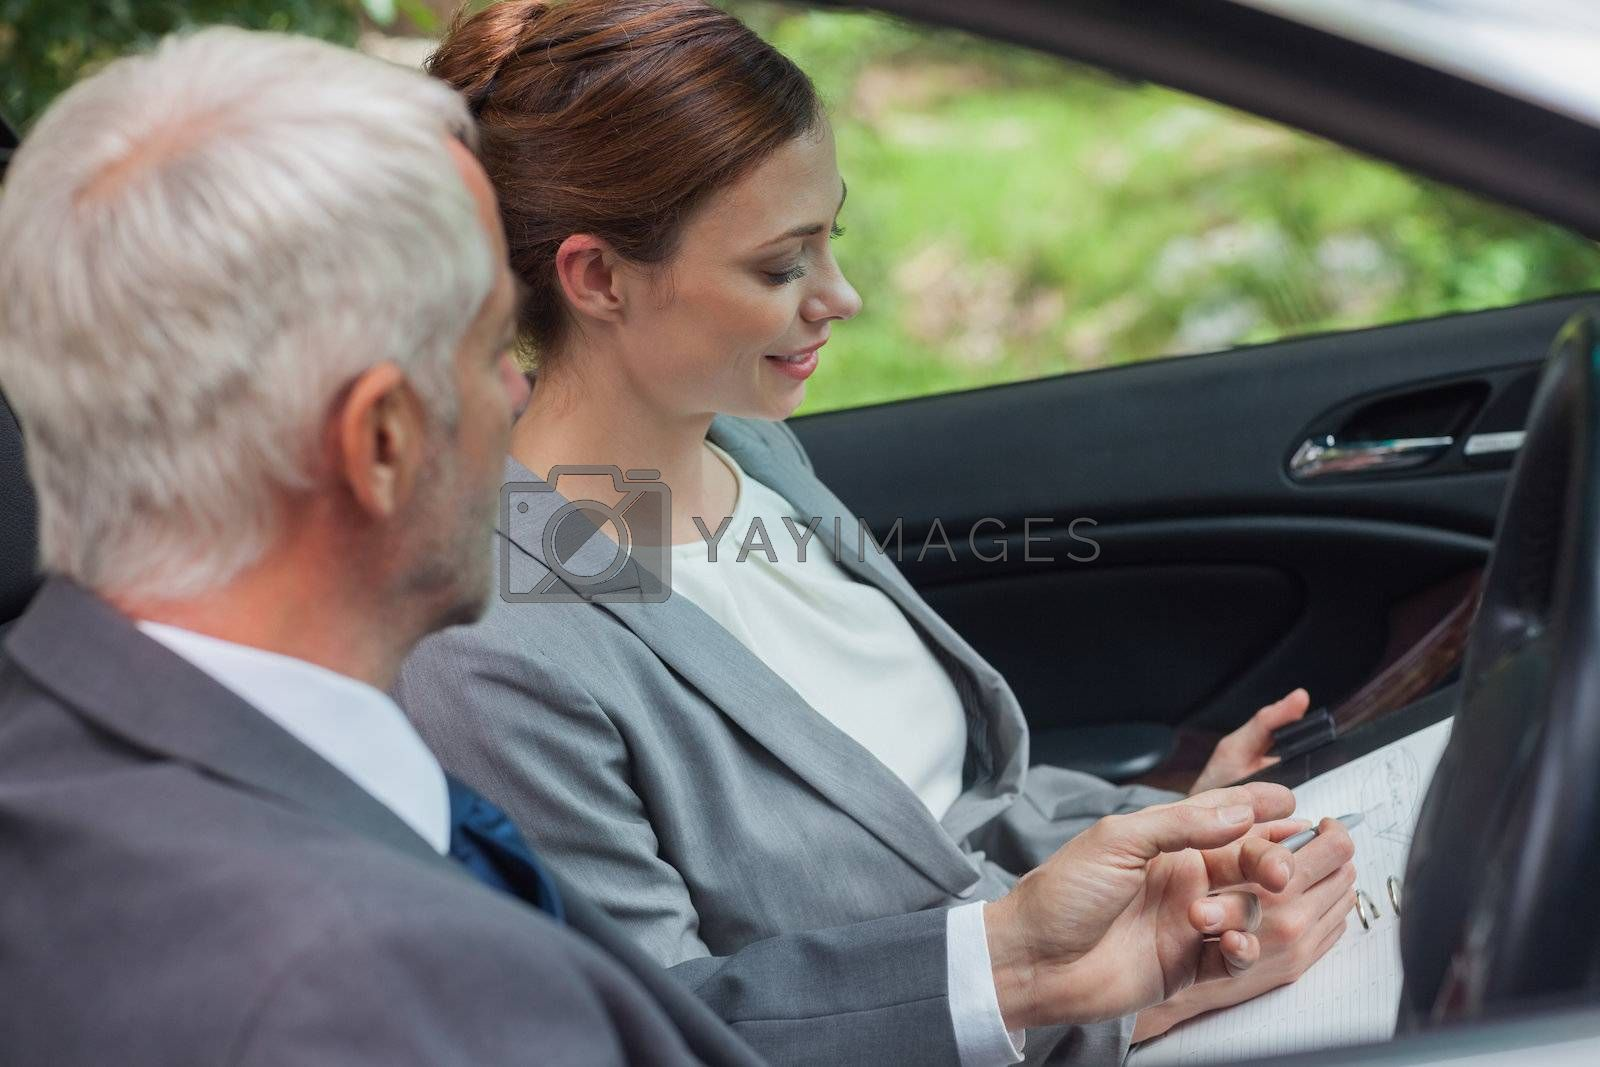 Partners working together in classy car by Wavebreakmedia